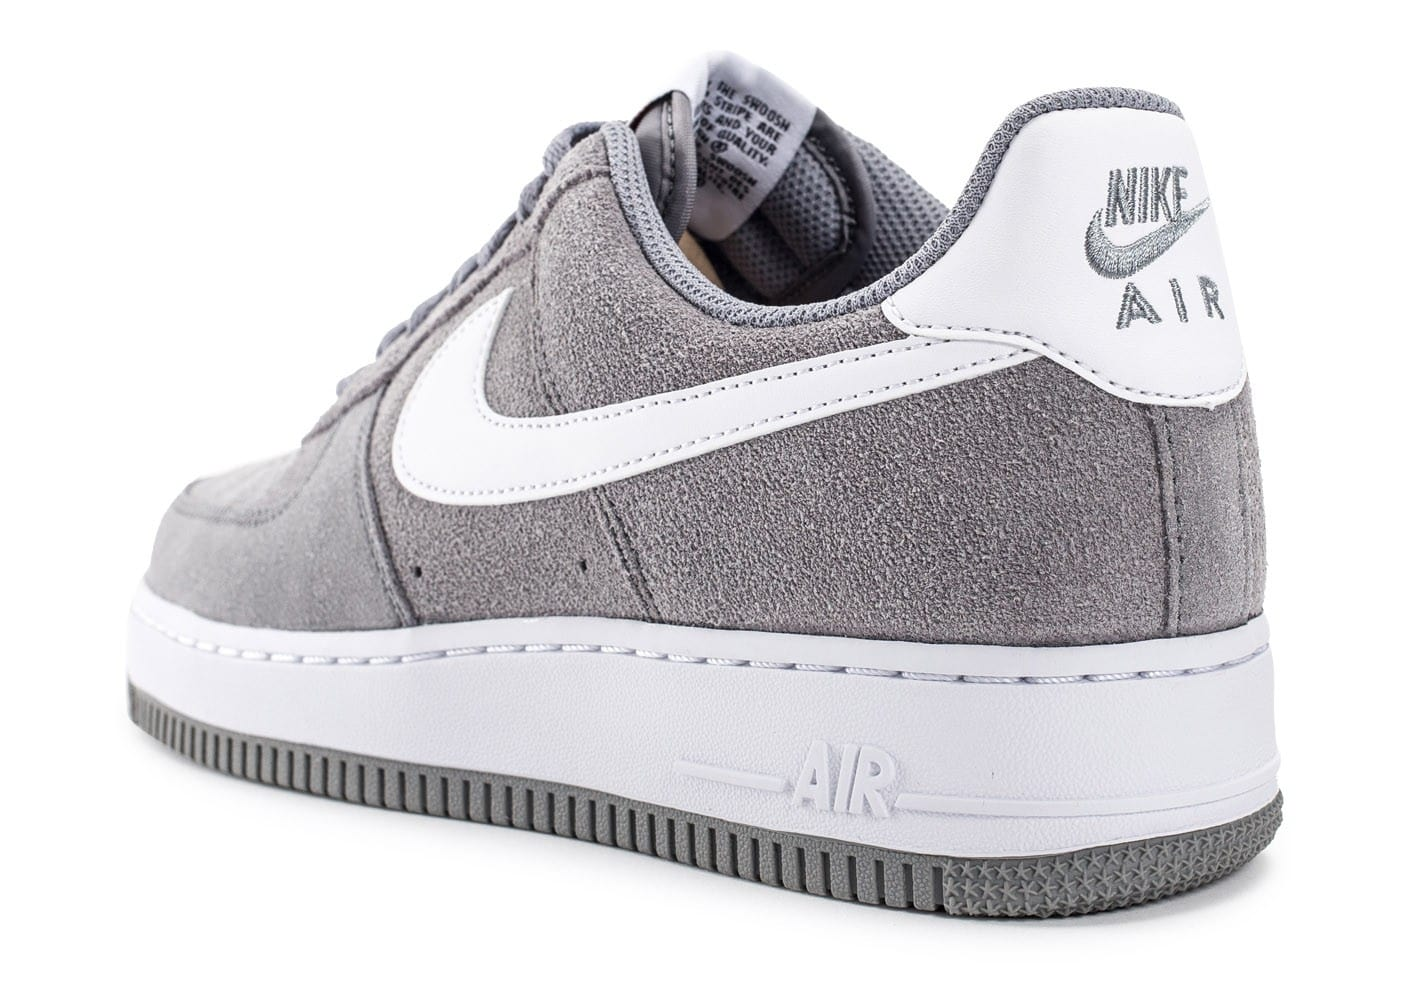 air force 1 suede grise femme Outlet Vente Authentique ...